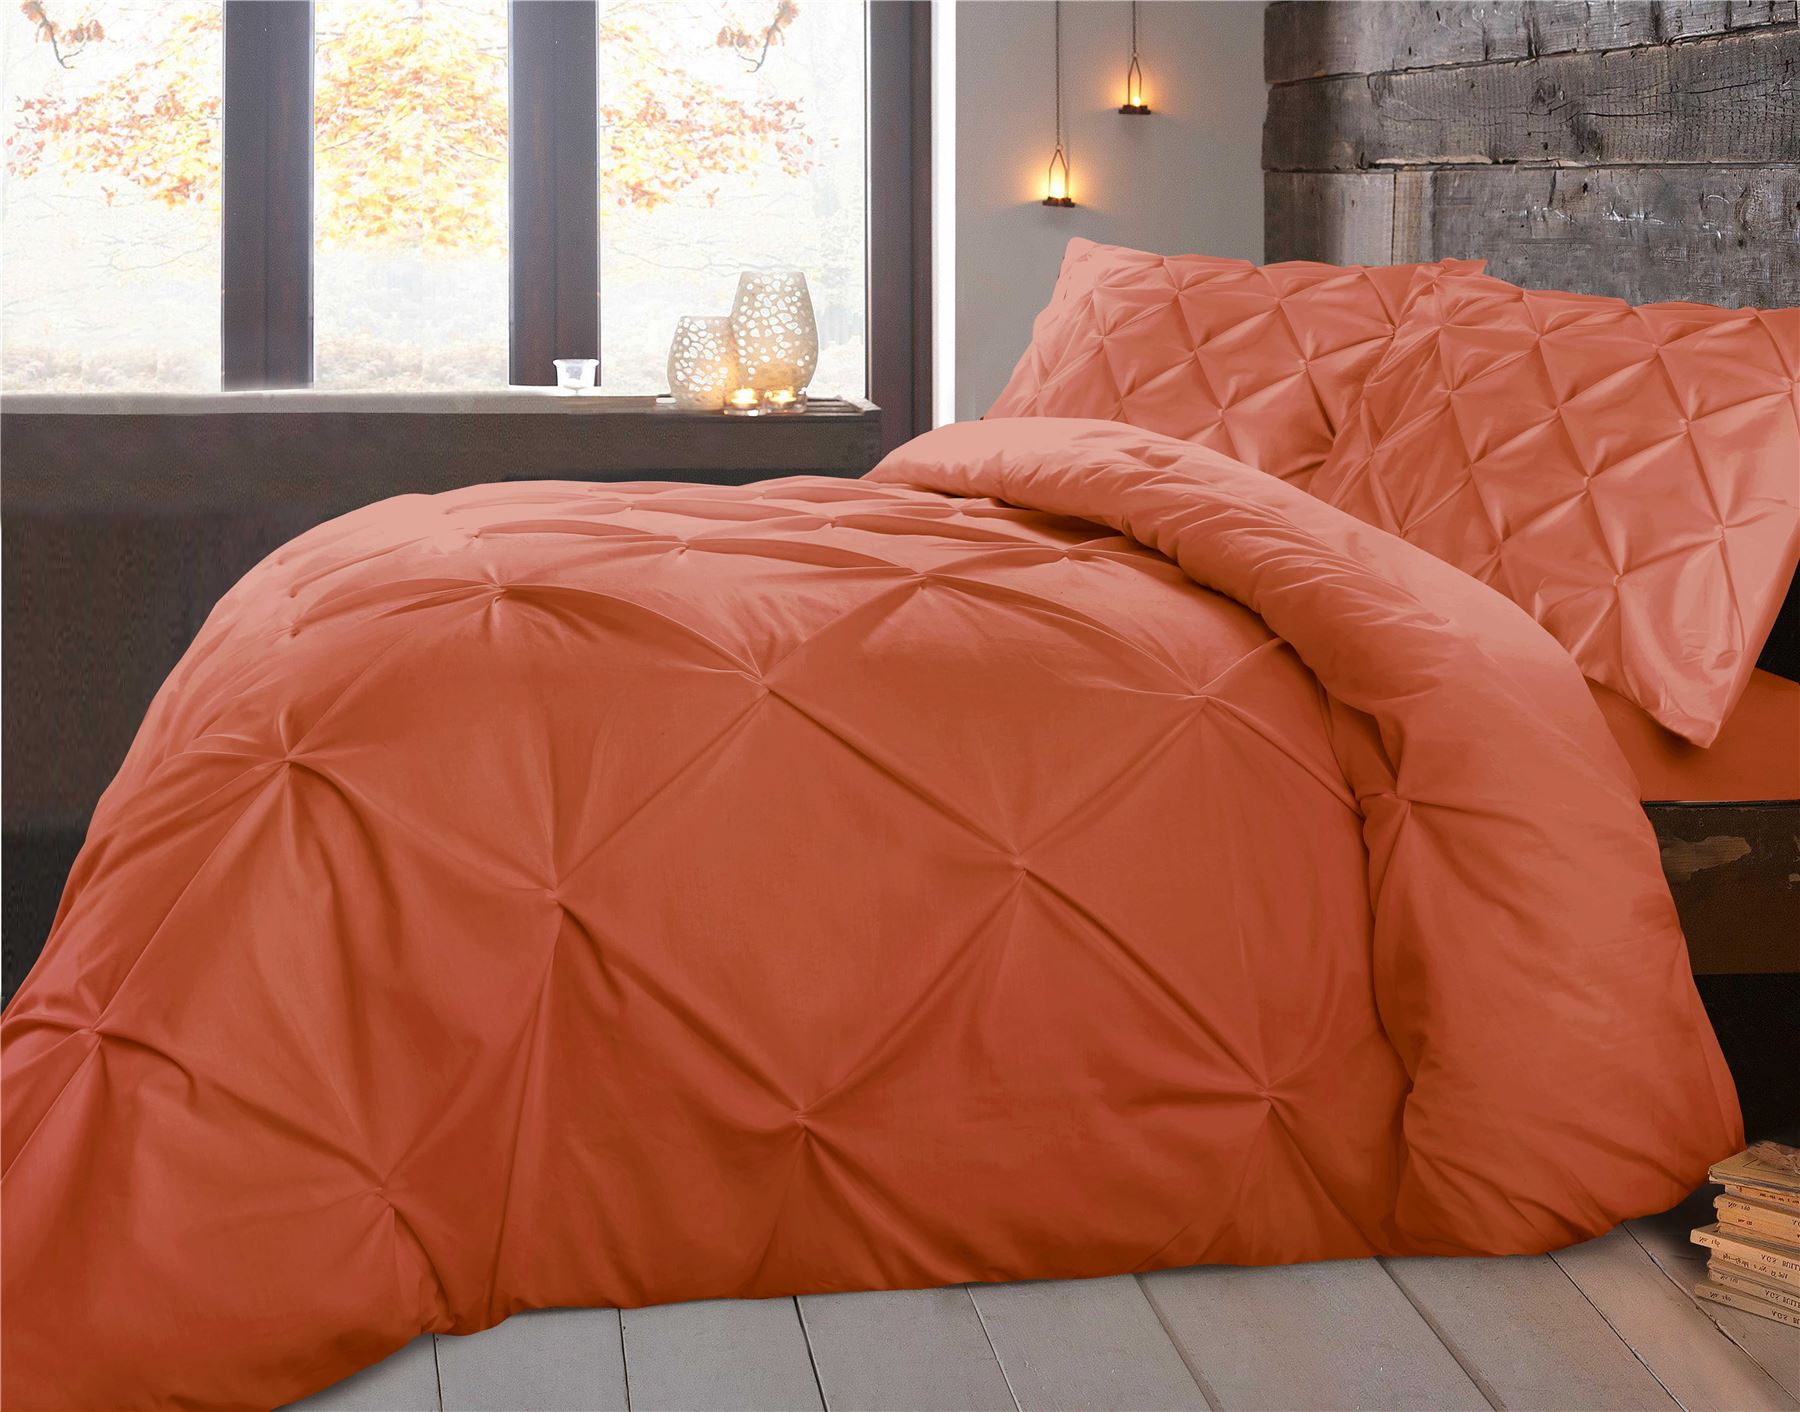 pinched products pleat weber duvet pinch chic whitley set armi zena home cover ruffled piece daya yvonne silver bedding